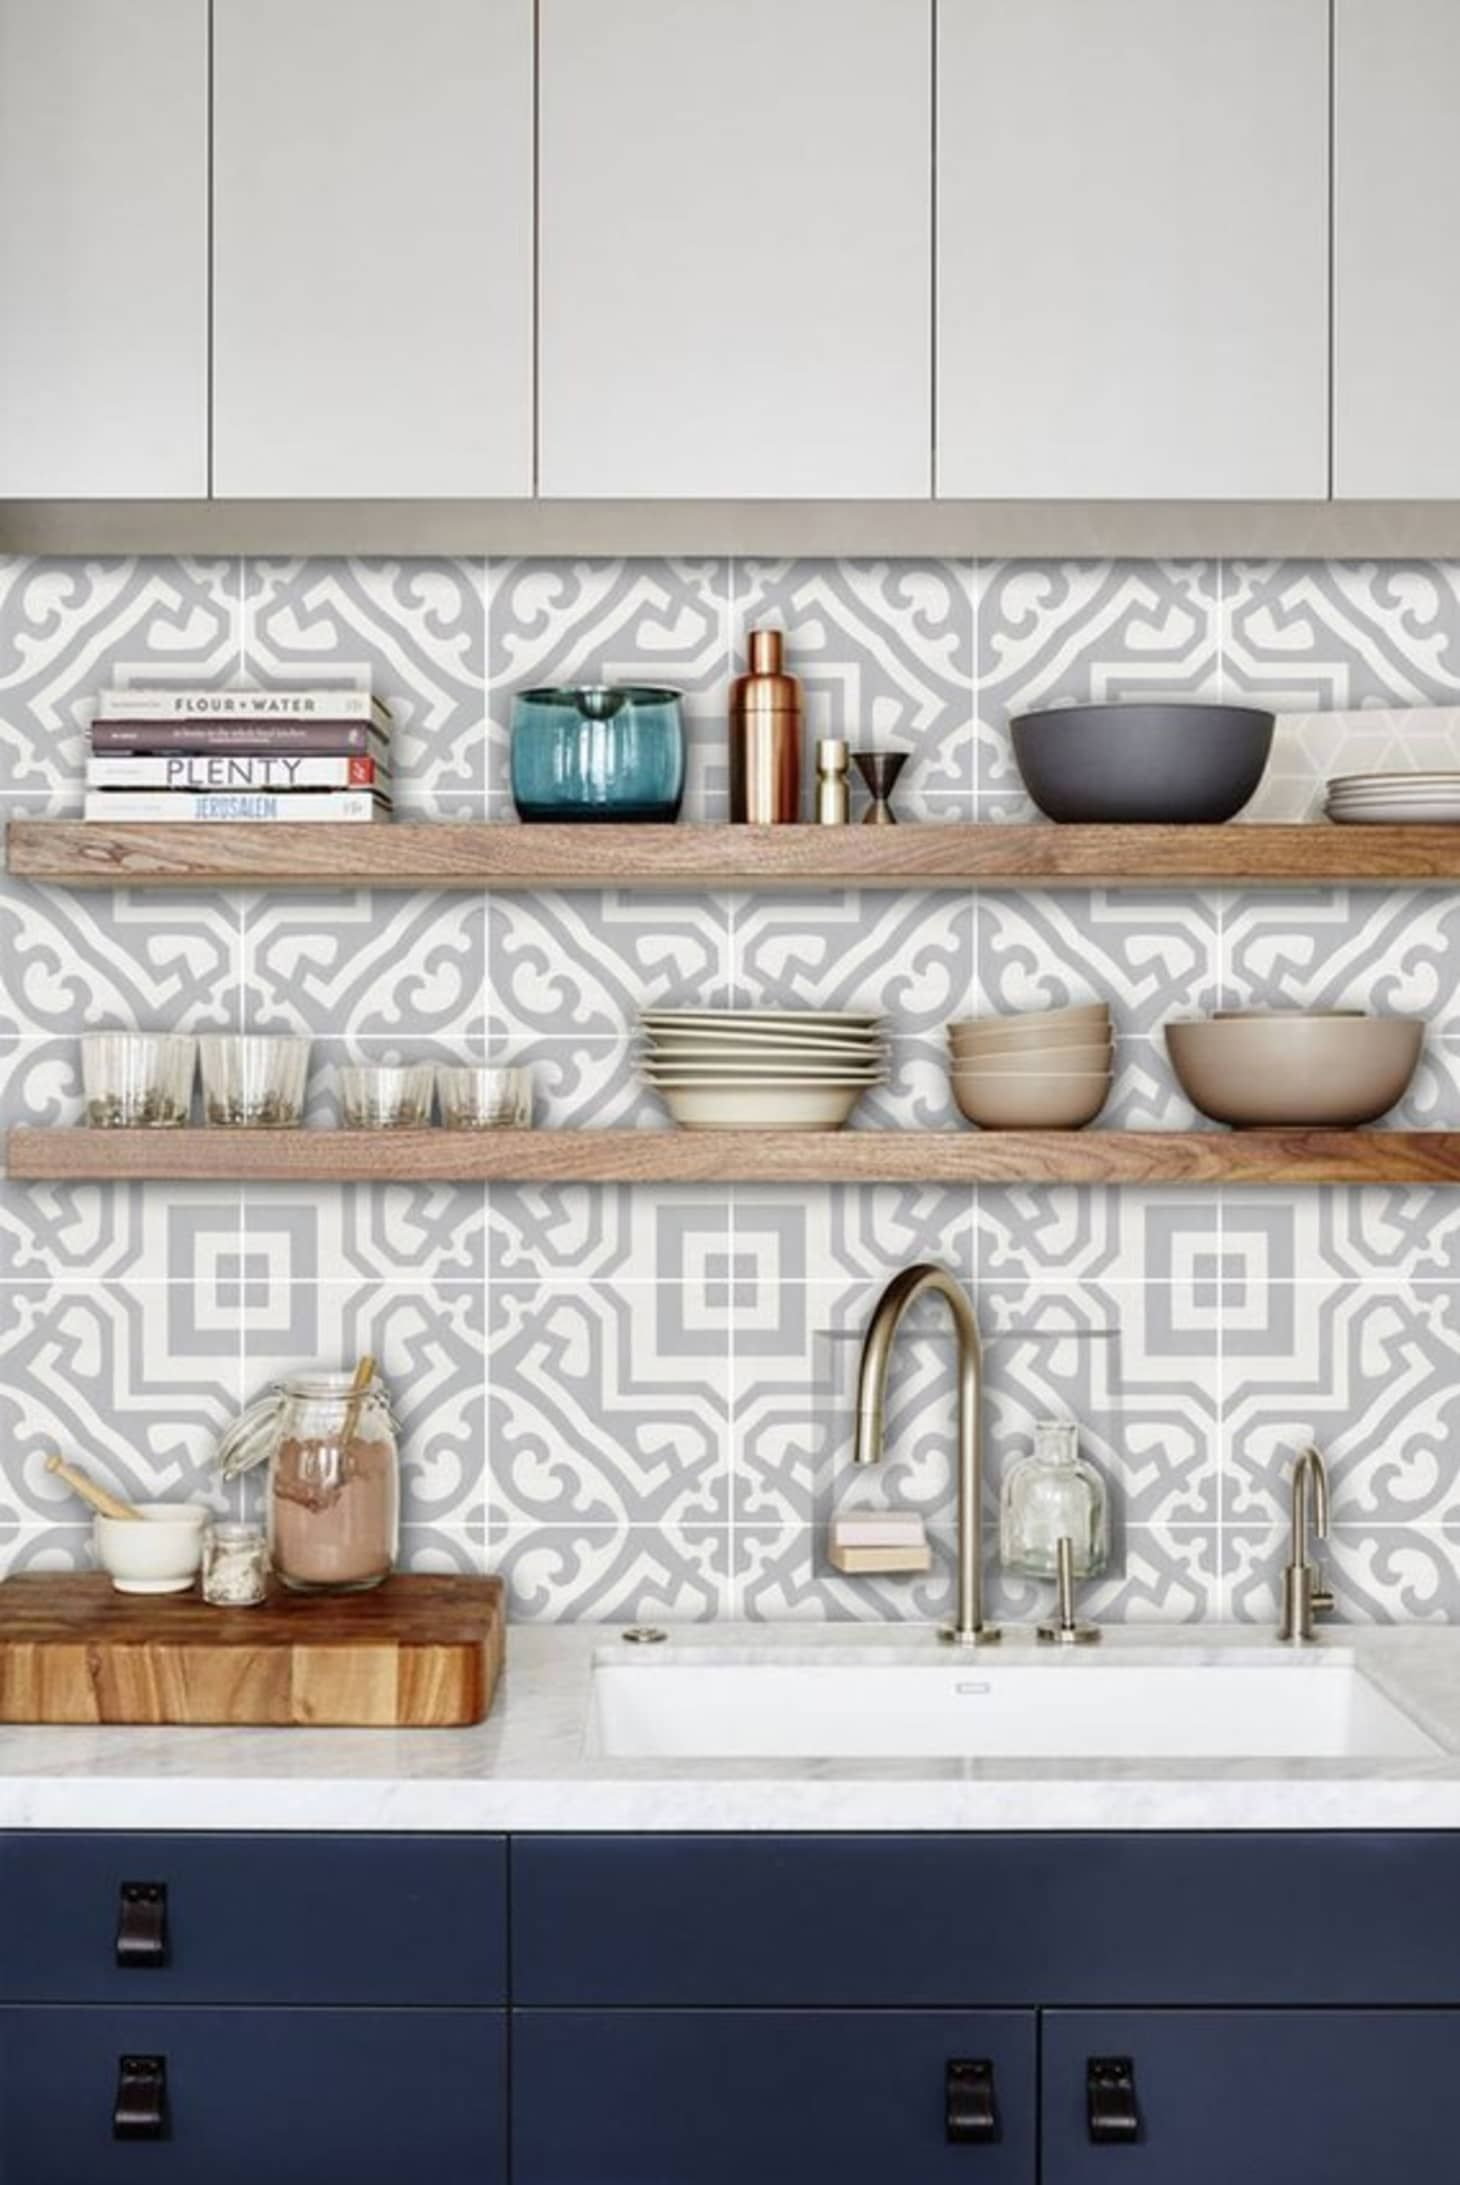 Kitchen And Bathroom Splashback Removable Vinyl Wallpaper Alba